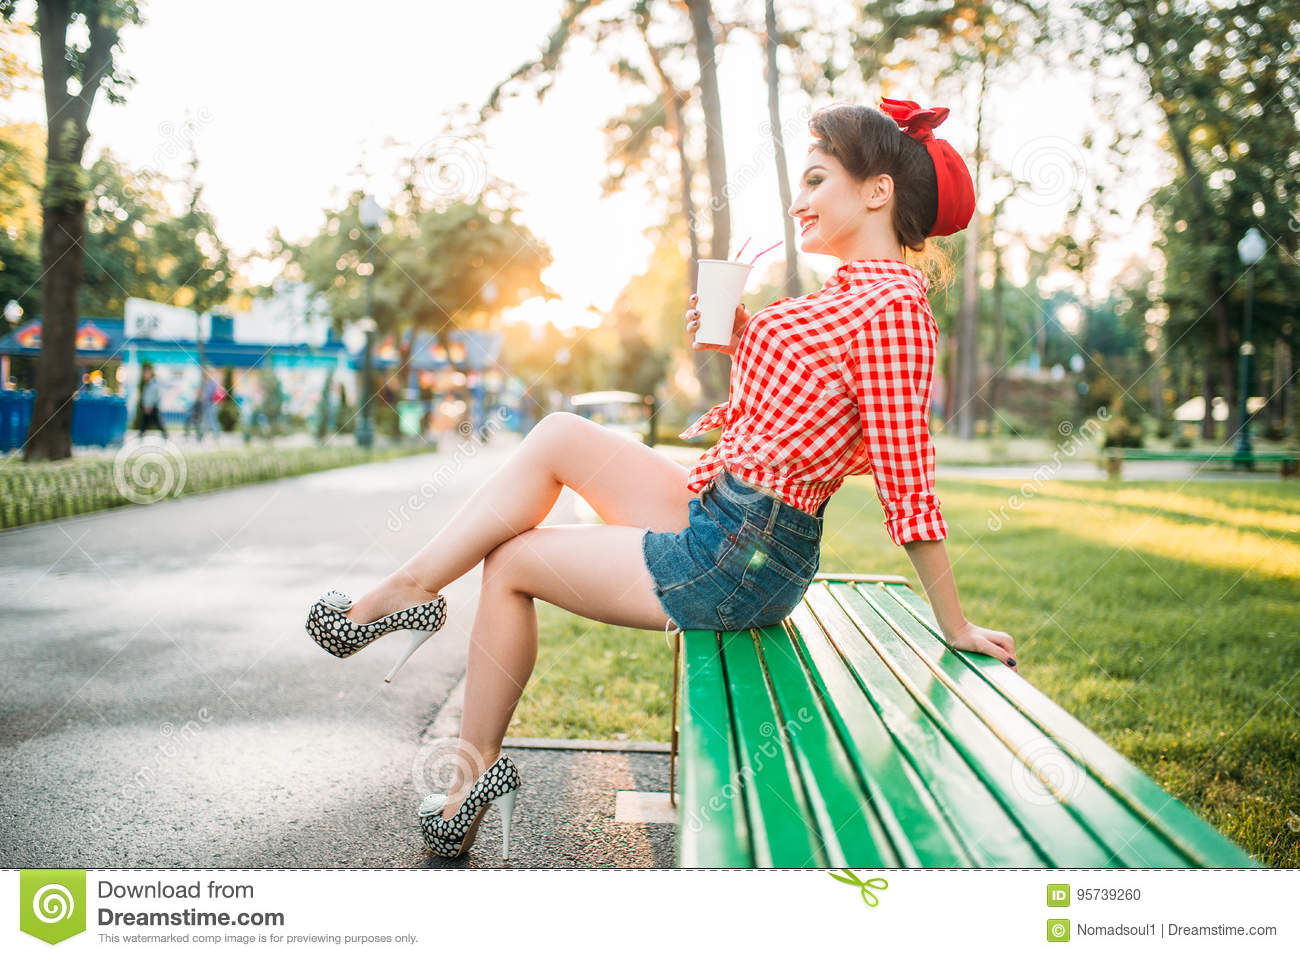 pinup girl holds cardboard cup with a straw